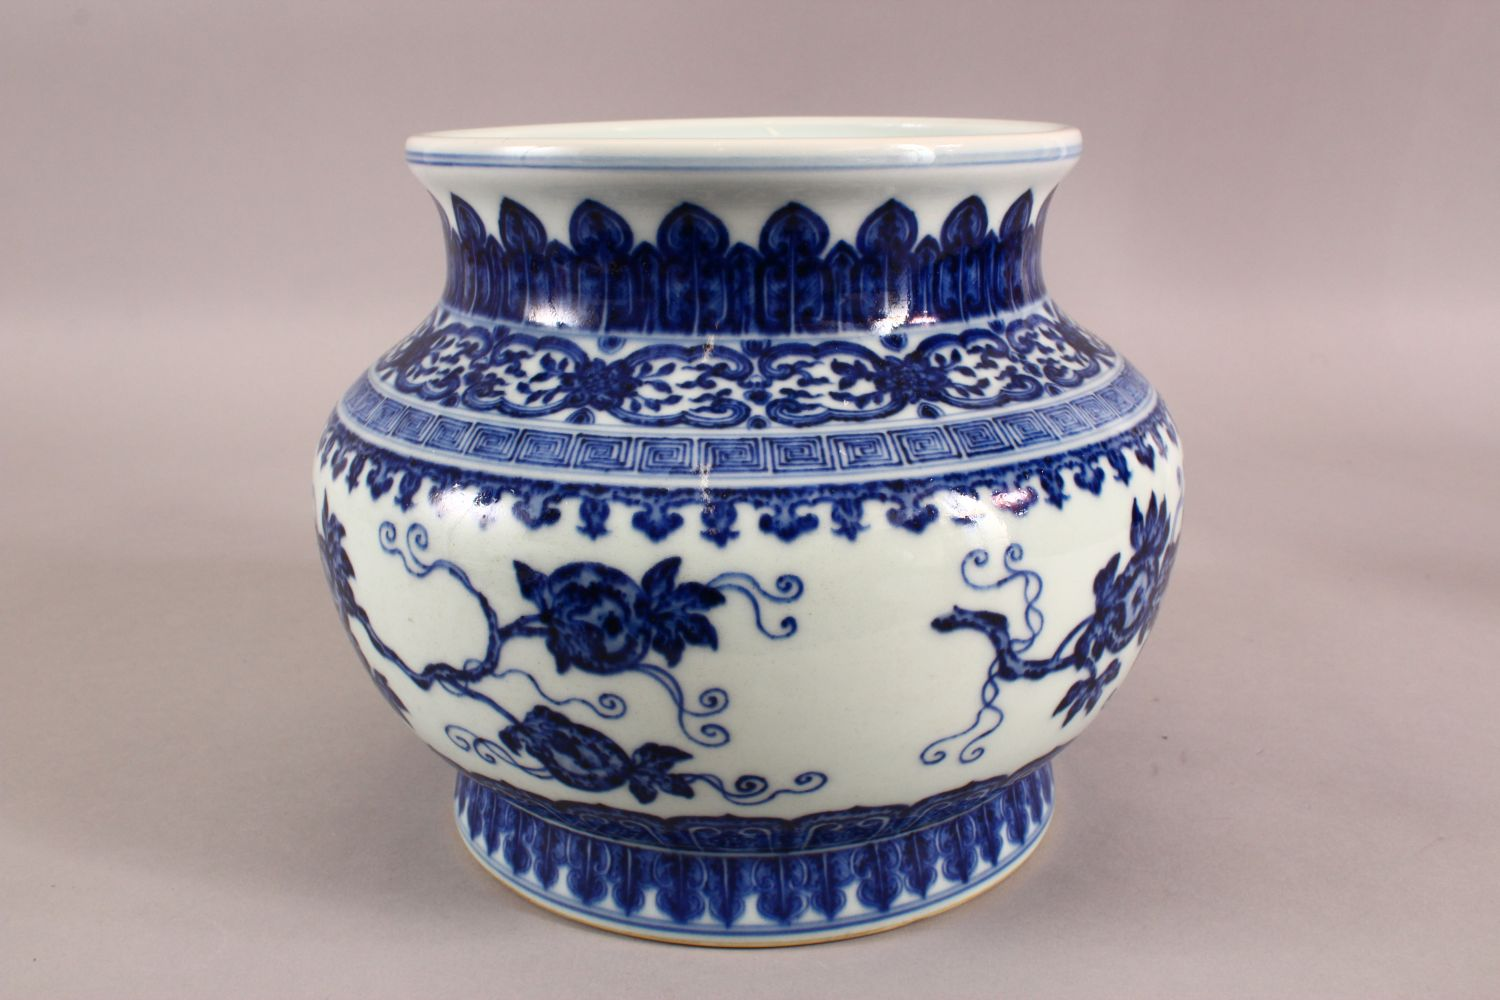 A CHINESE BLUE AND WHITE PORCELAIN PLANTER / VASE, 19cm high, approx 24cm wide. - Image 3 of 6